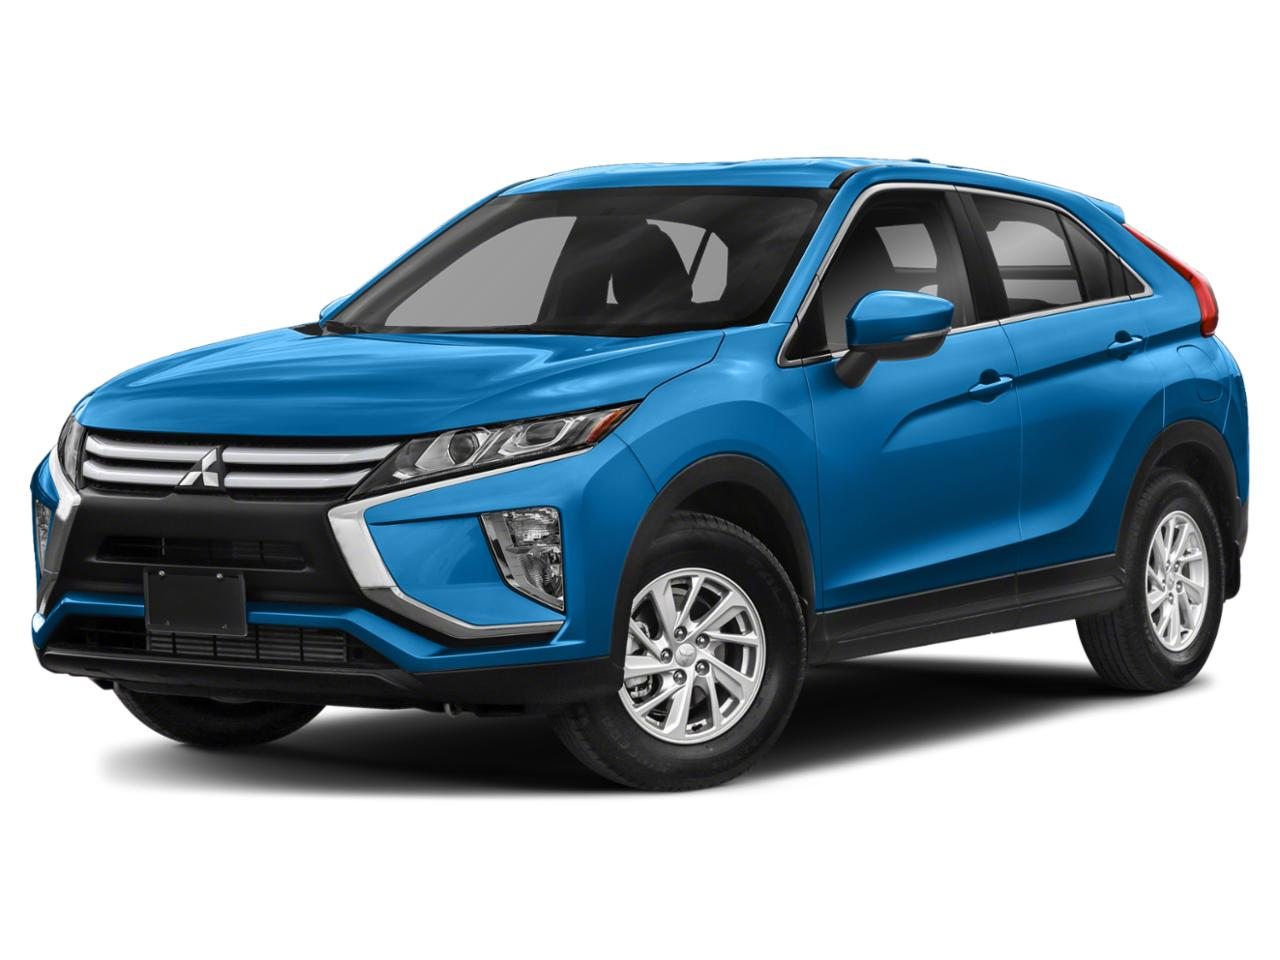 2018 Mitsubishi Eclipse Cross Vehicle Photo in Peoria, IL 61615